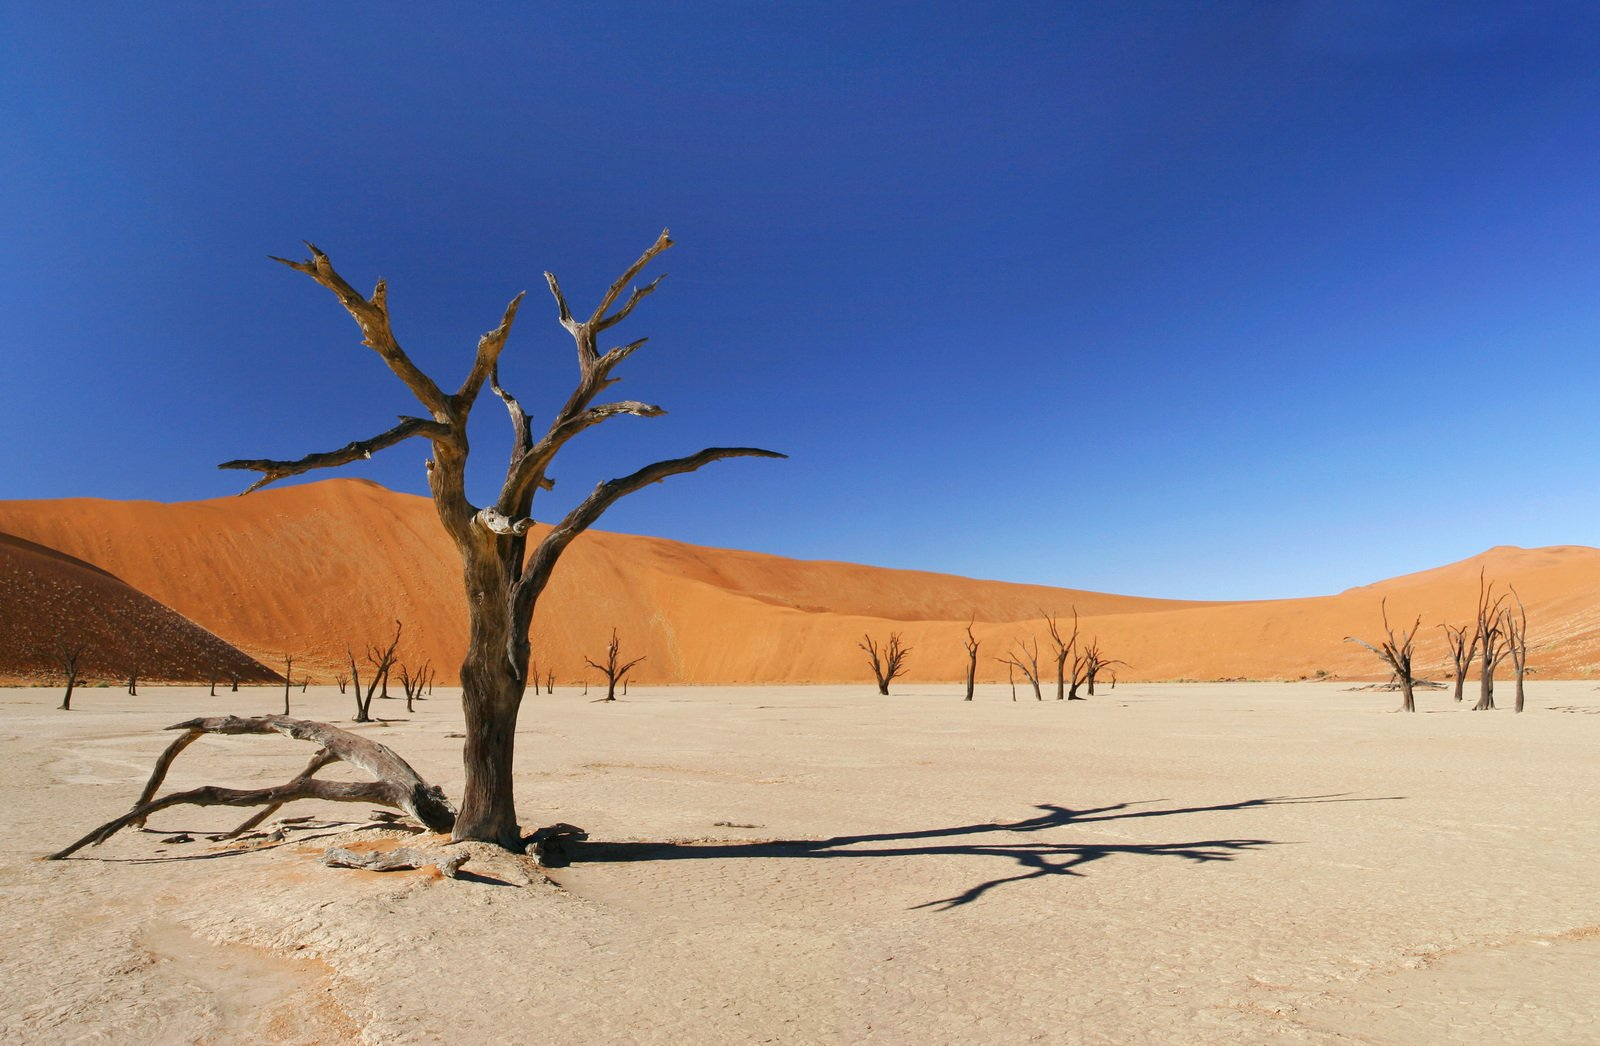 Explore the Namib